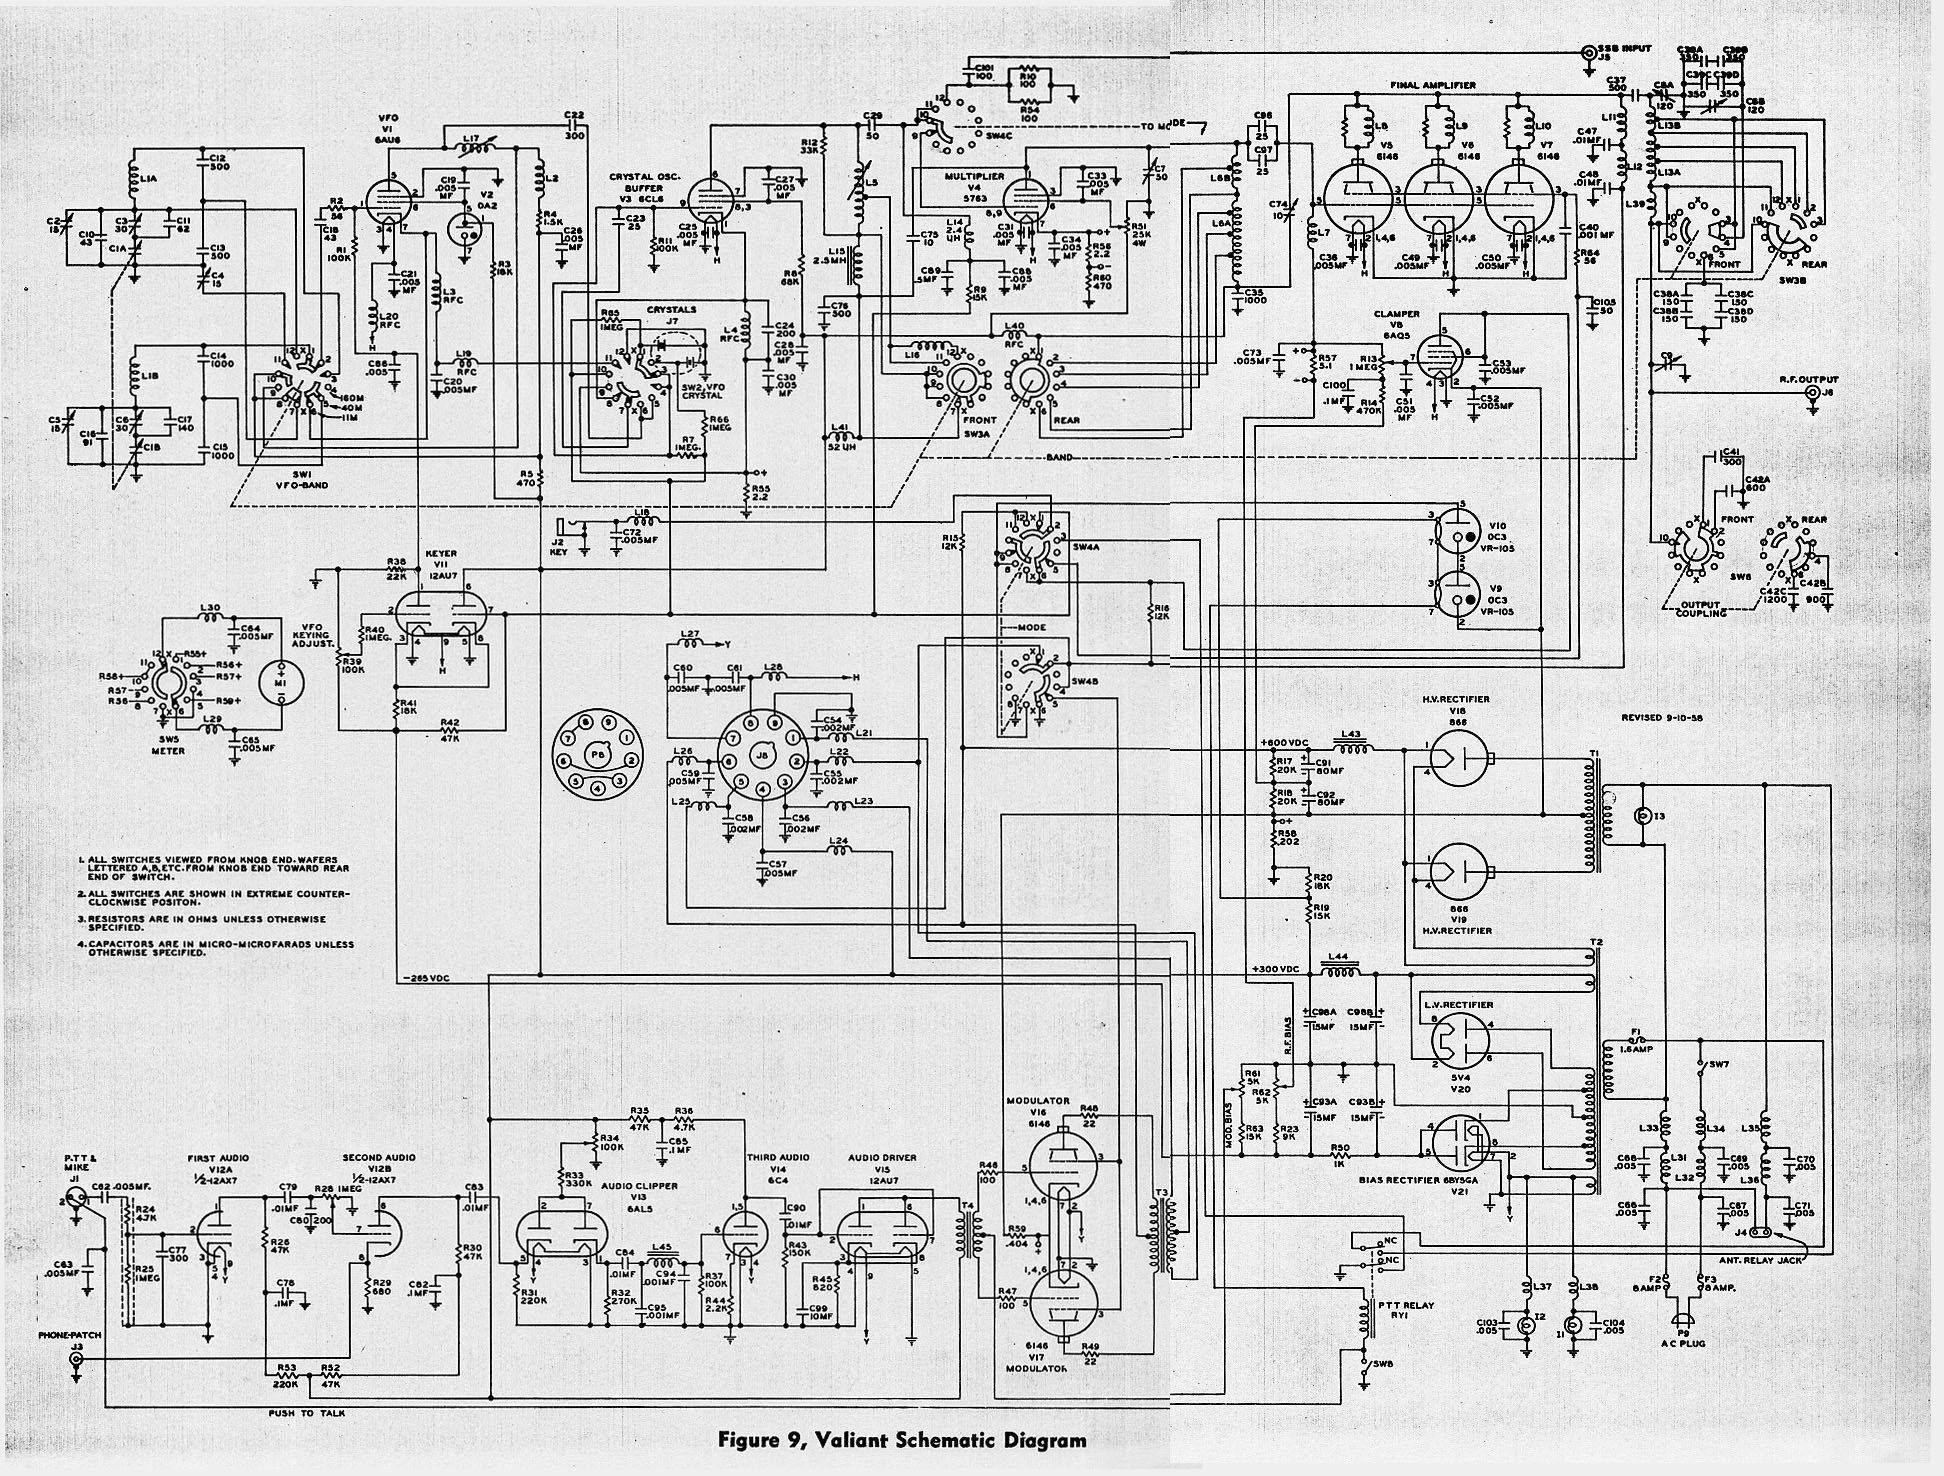 1955 1962 Ef Johnson Viking Valiant Am Cw Transmitter Switch Wiring Diagram Likewise Carling Rocker Schematic Manual N2awa Shack